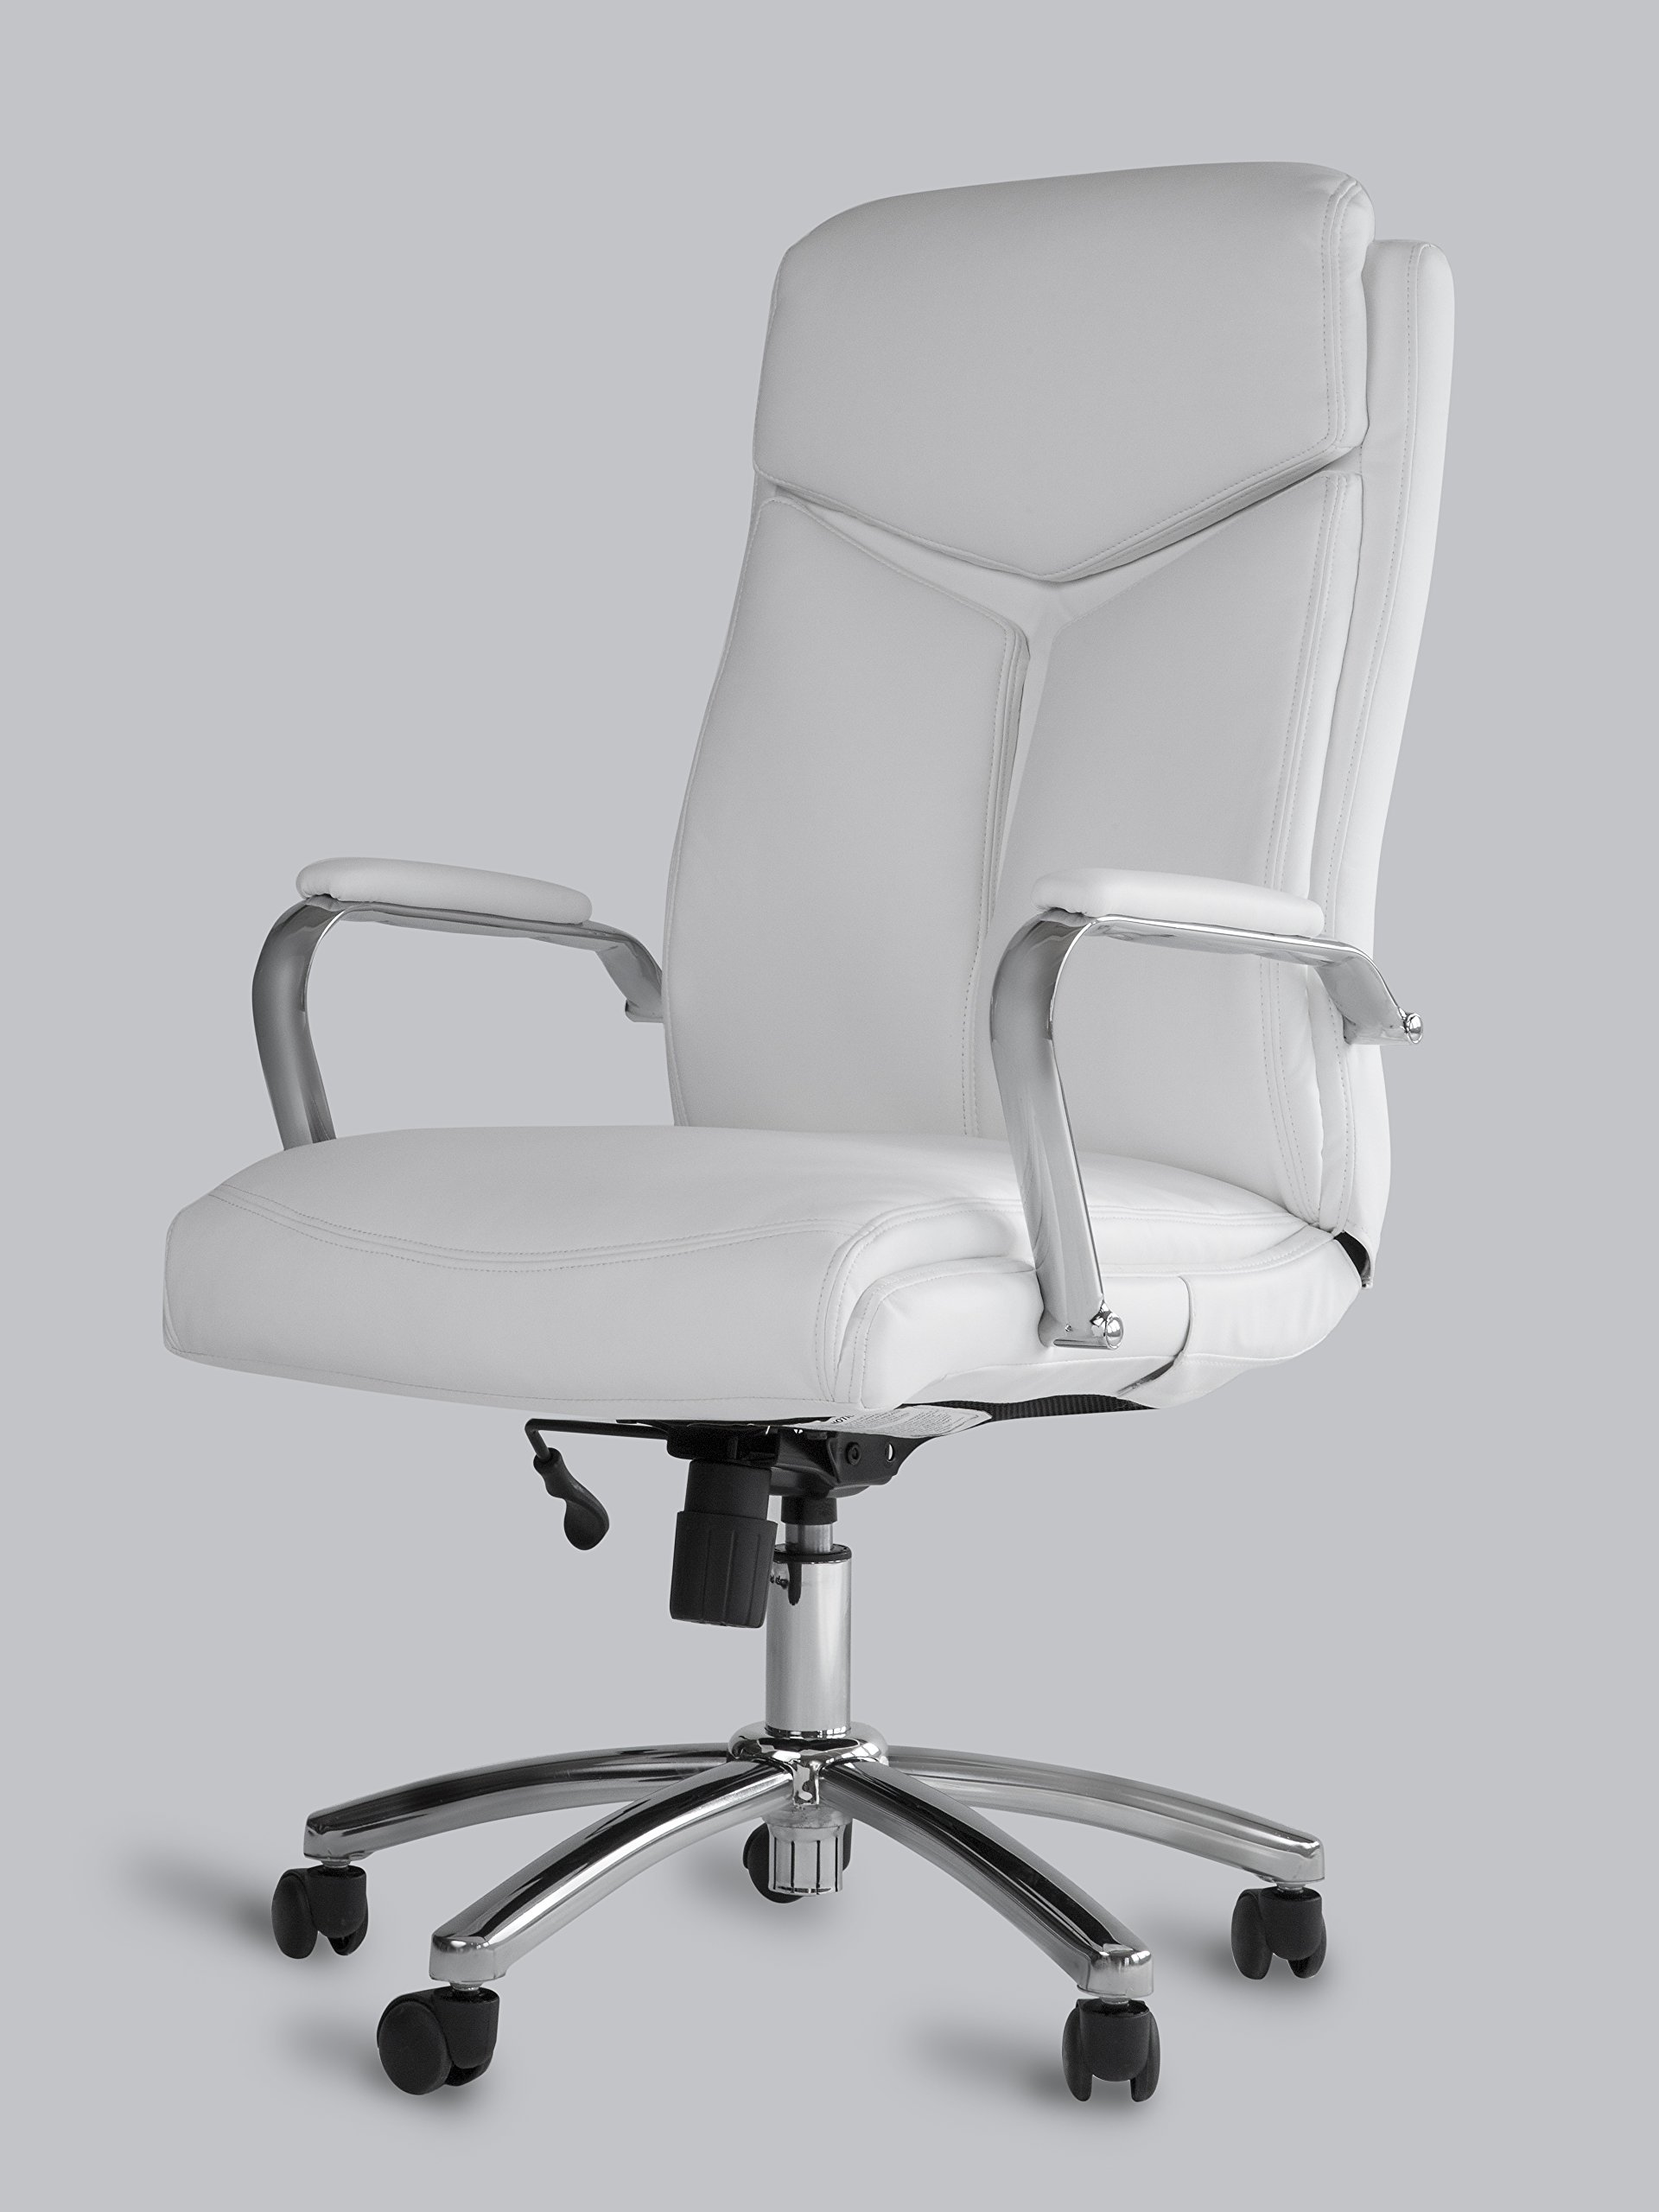 Get Quotations Office Factor White Leather Executive Rolling Swivel Chair With Chrome Metal Components Comfortable Padded Armrests